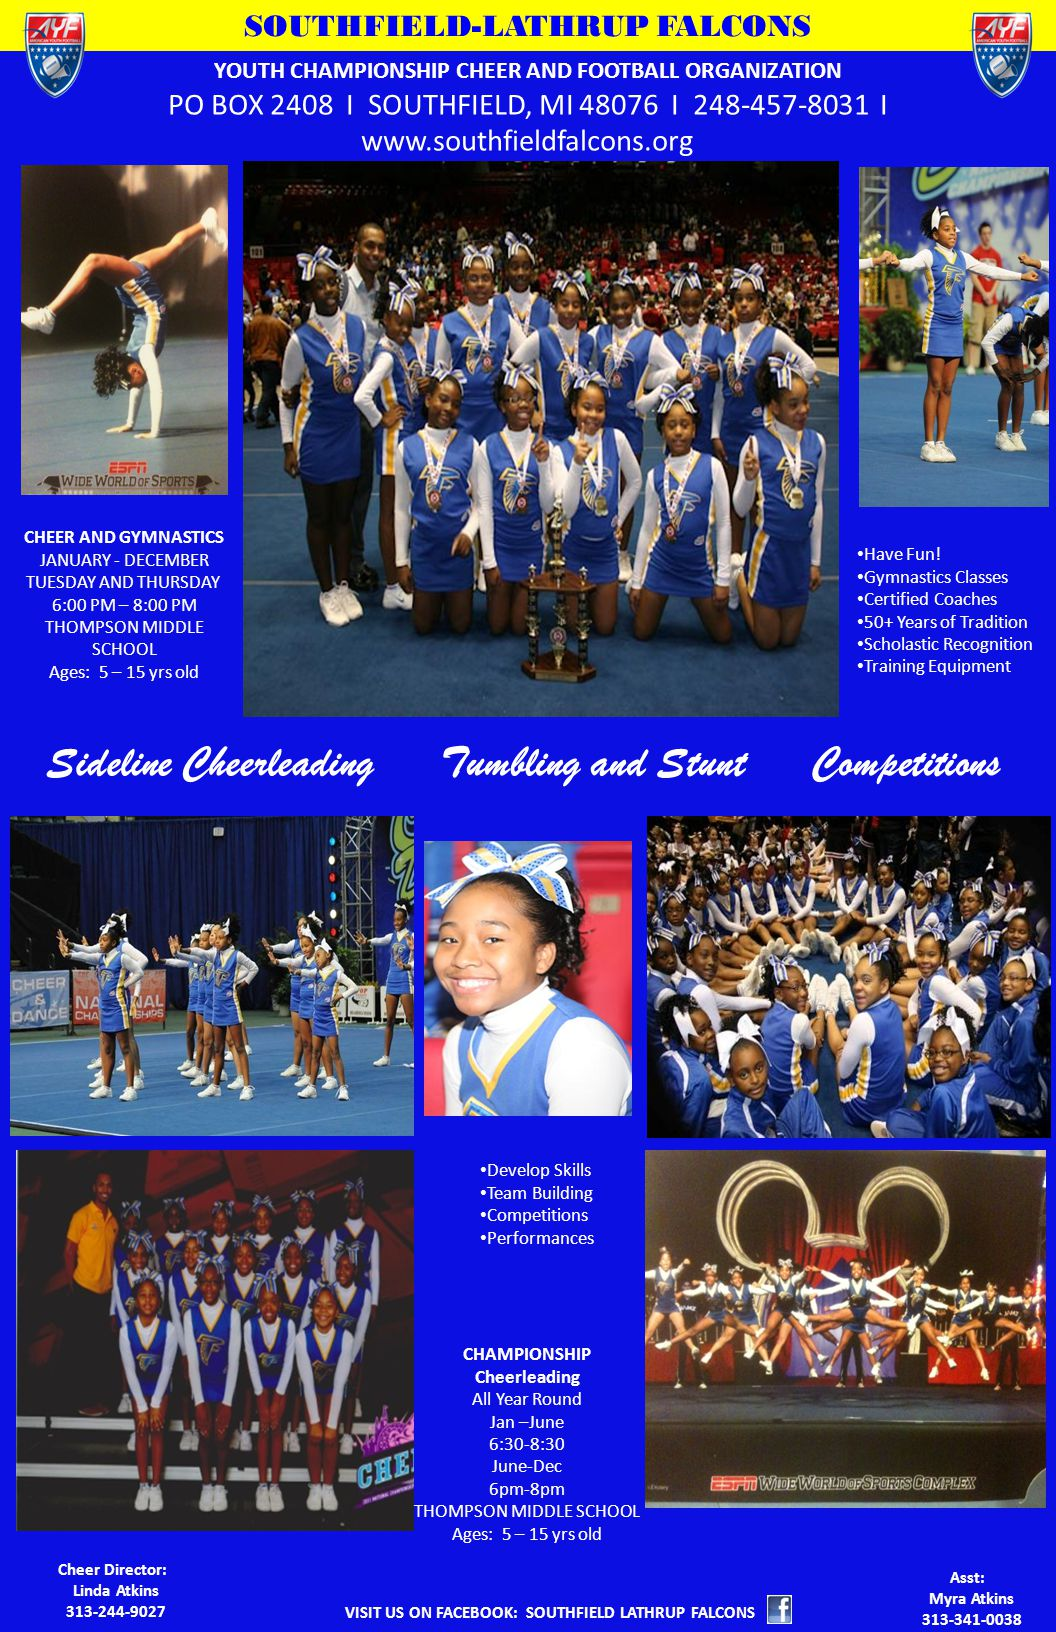 Sideline Cheerleading Tumbling and Stunt Competitions